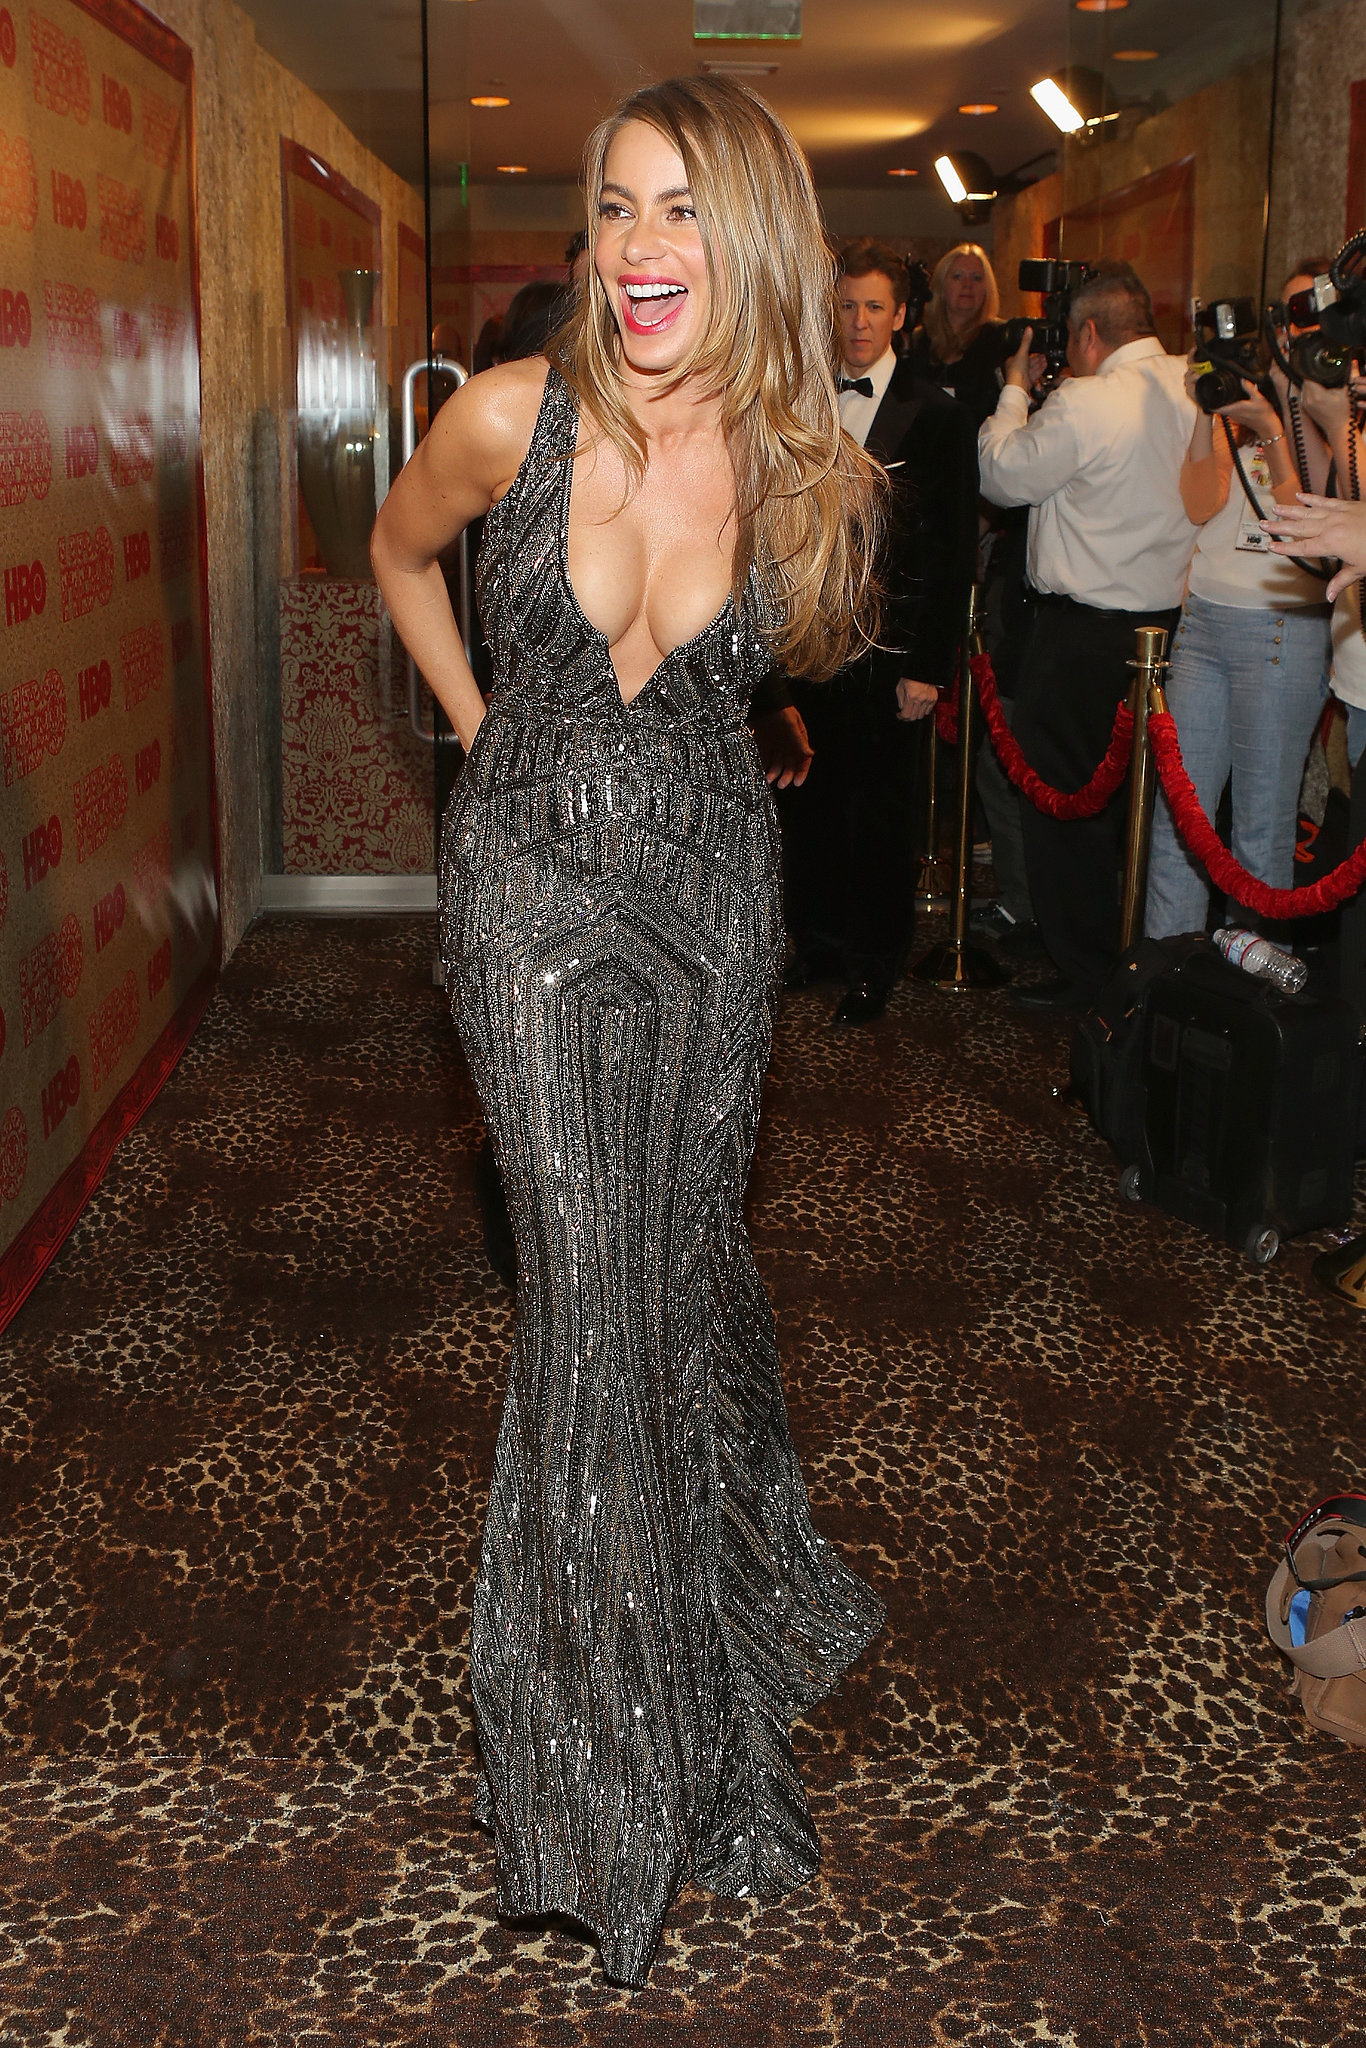 Sofia Vergara bared her cleavage.